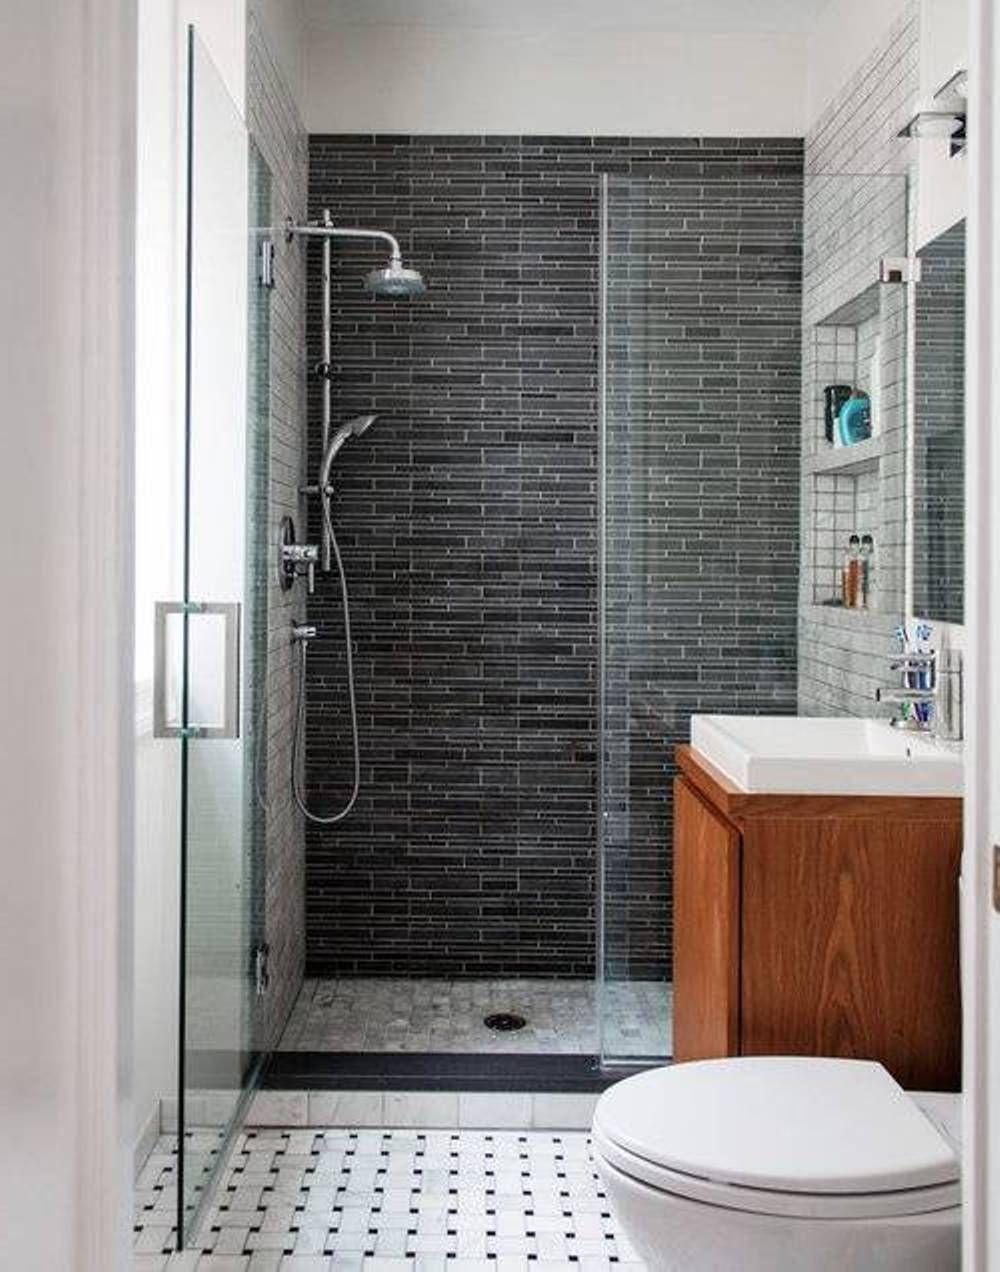 Best Images About Bathroom Feature Wall On Pinterest - Bathroom ideas